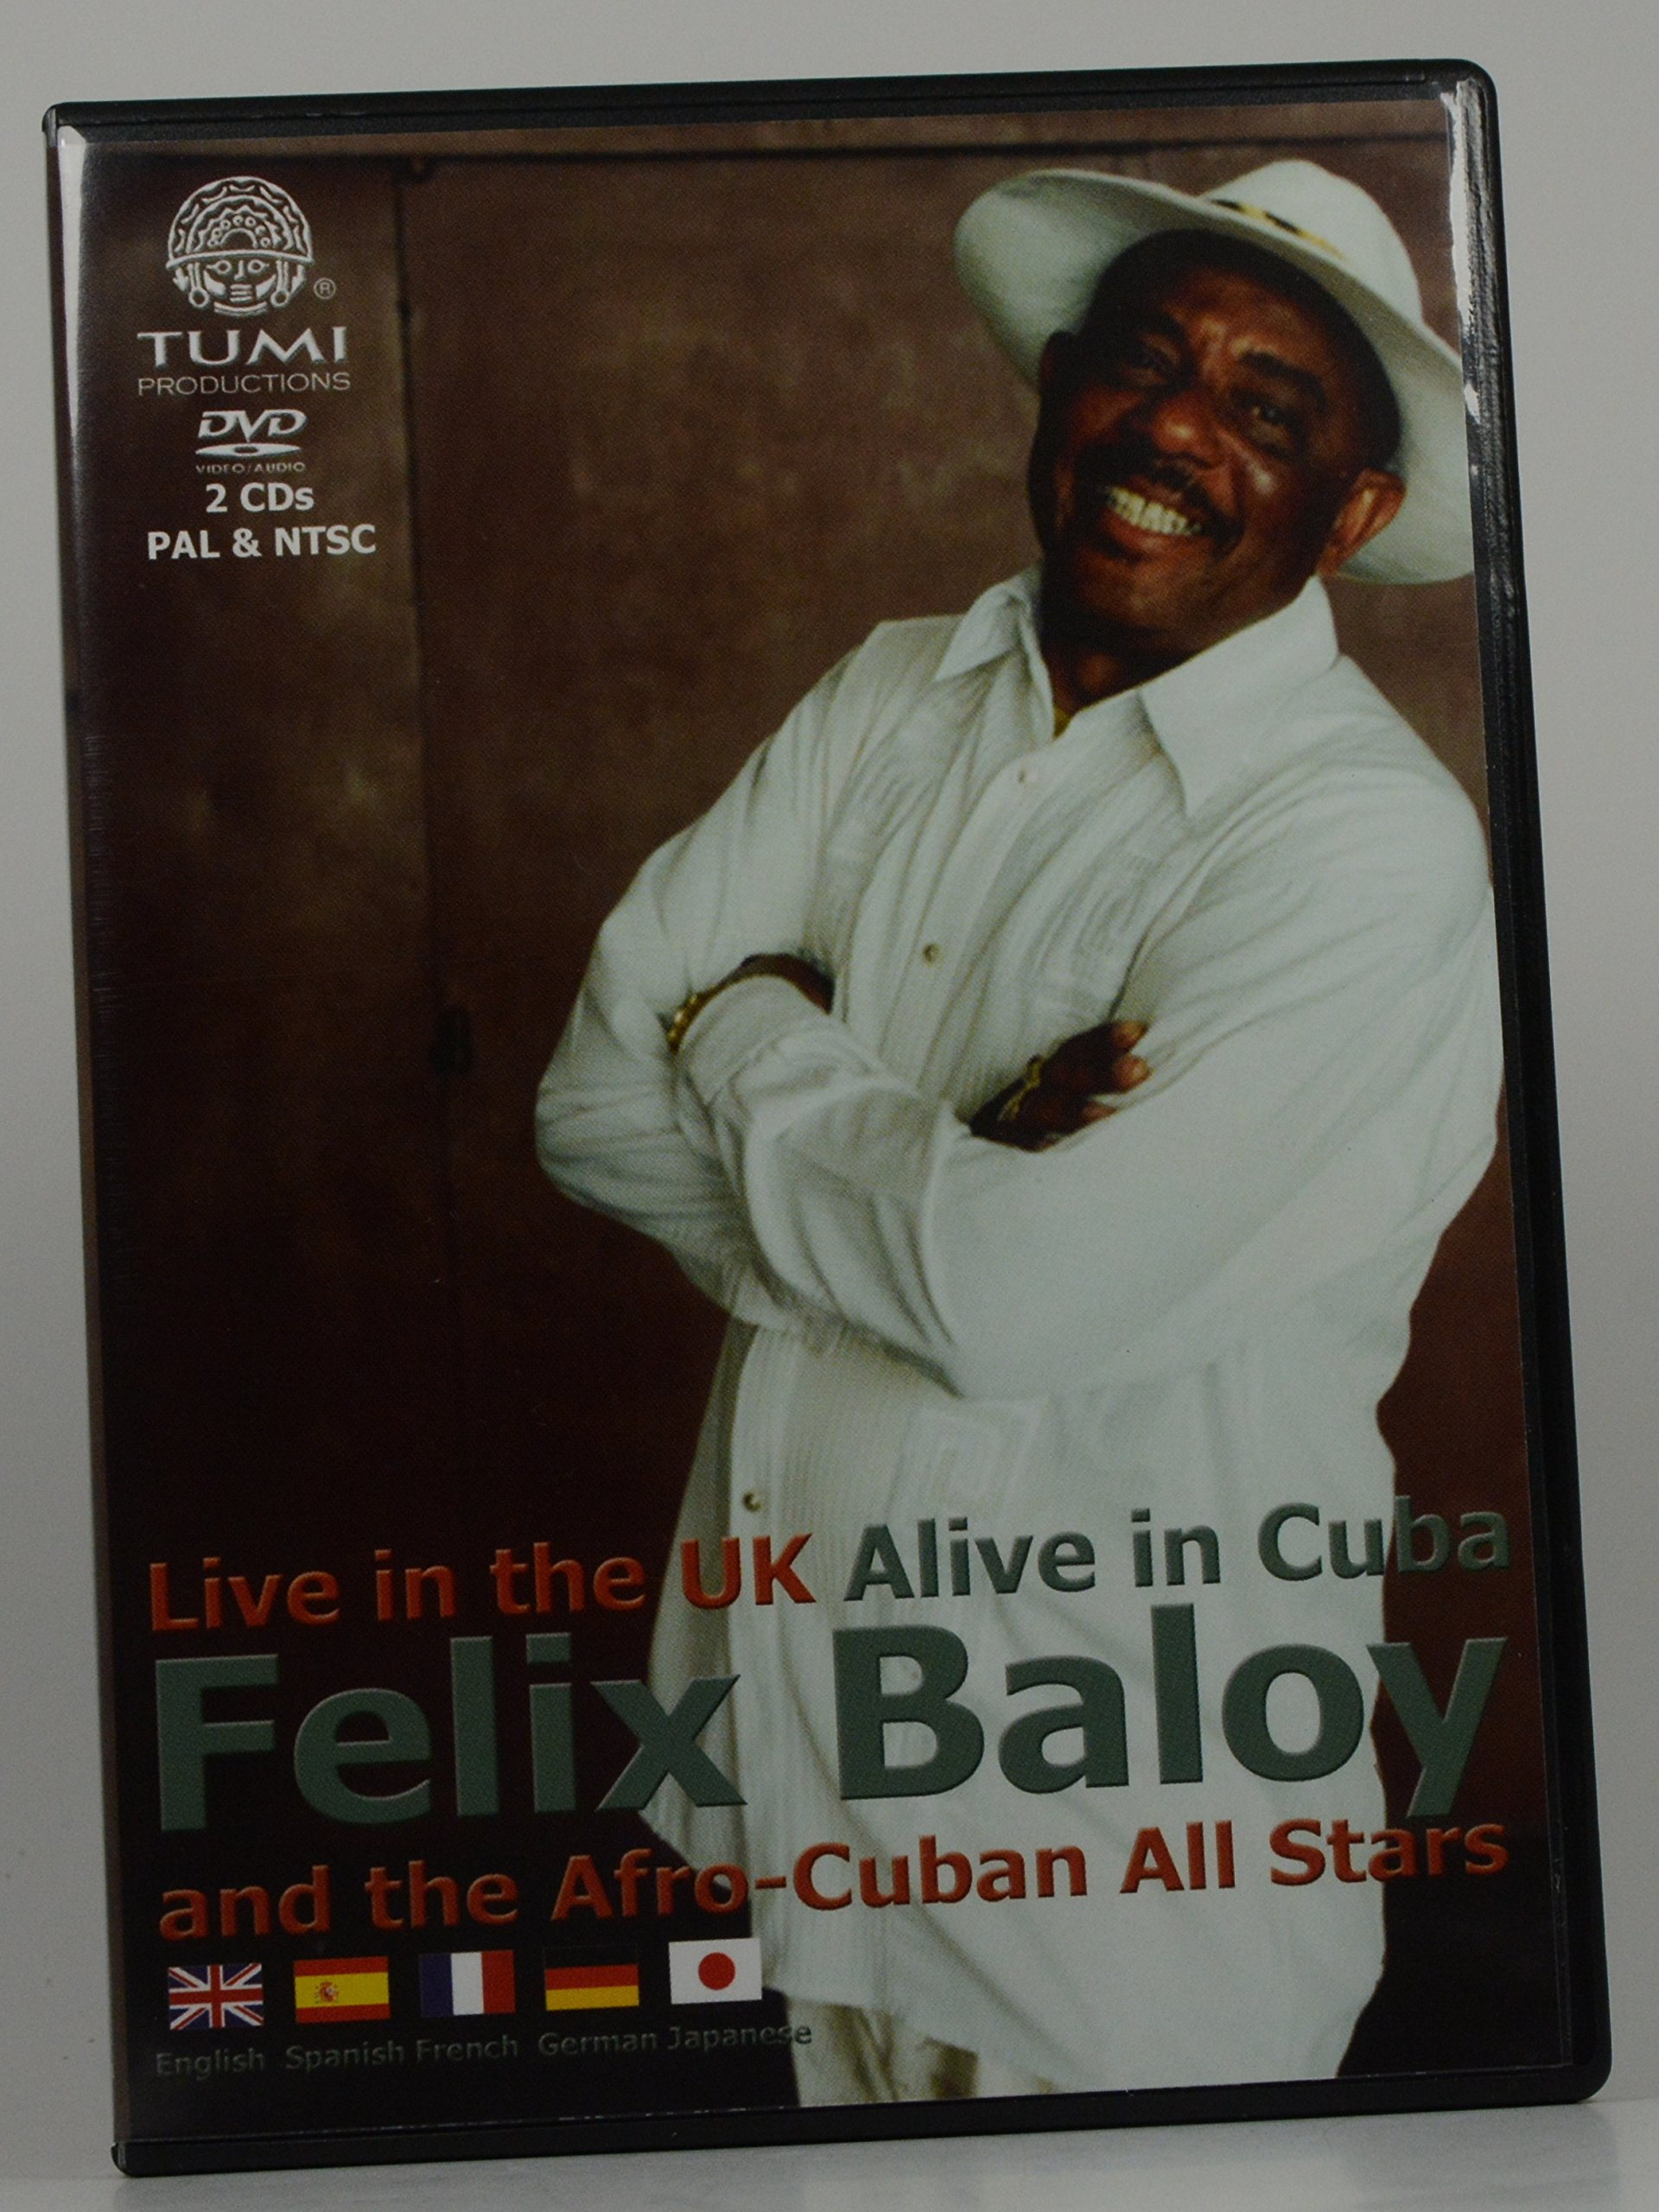 Felix Baloy & the Afro-Cuban All Stars: Live in the UK Alive in Cuba by Tumi Records